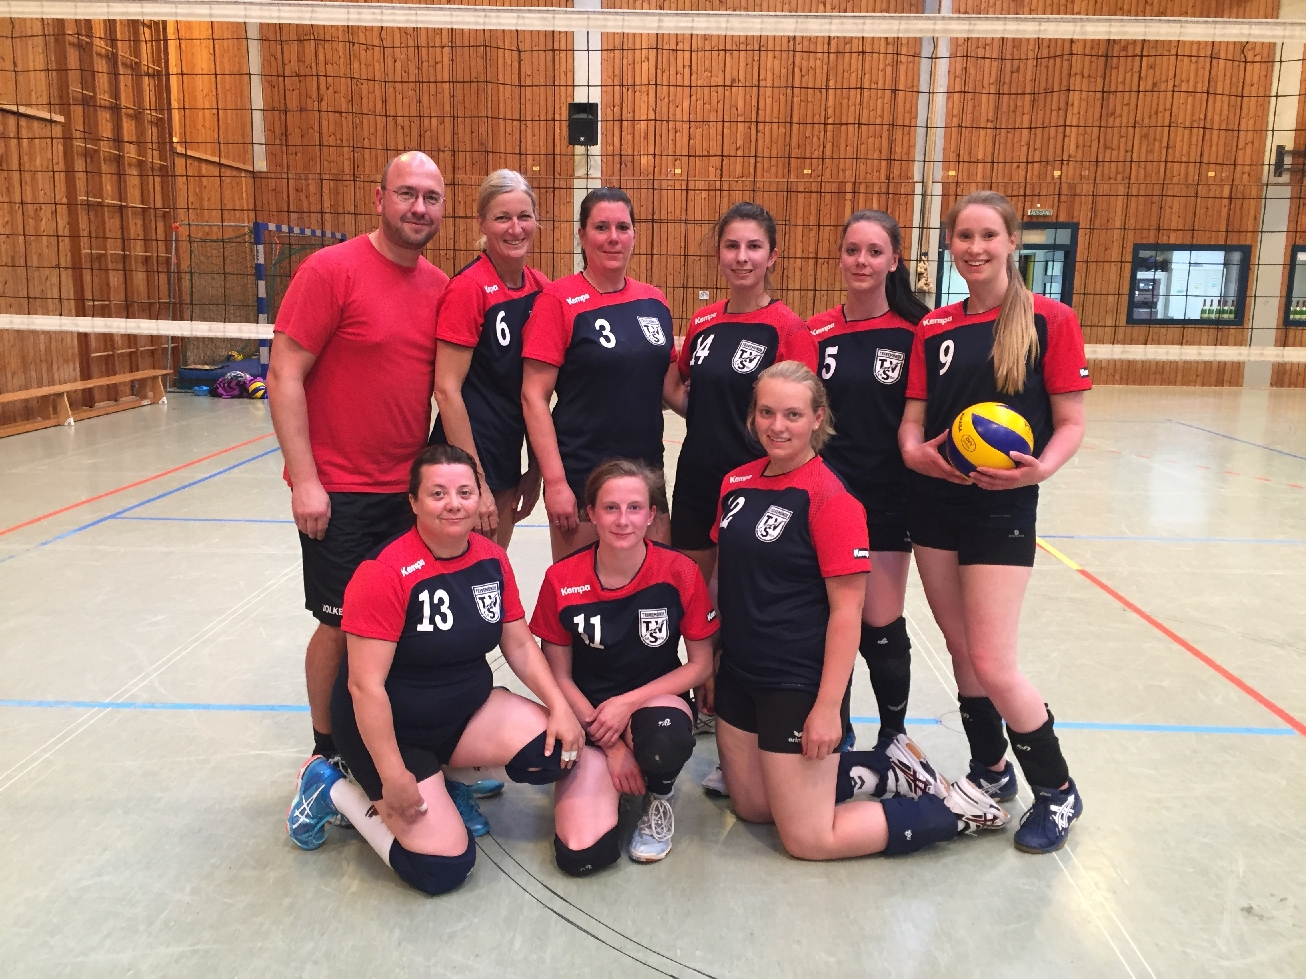 20180526 9 Damenvolleyballturnier Bild58